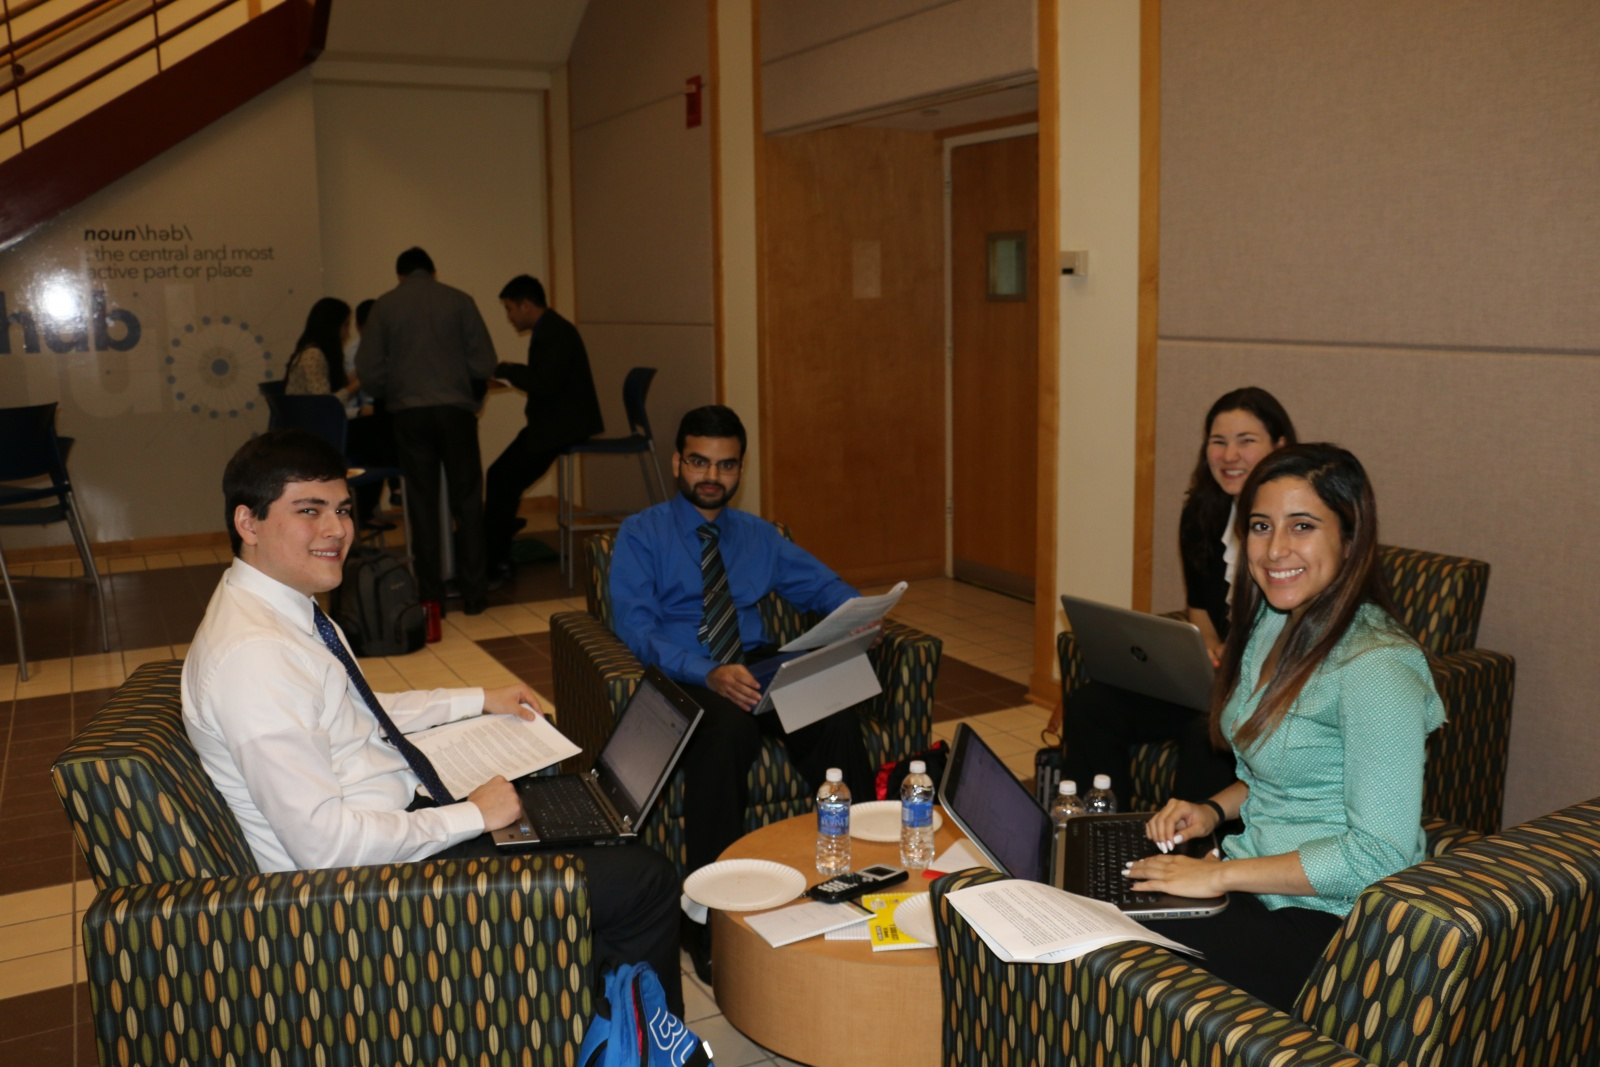 School of Engineering Students Take on Accenture Case Study